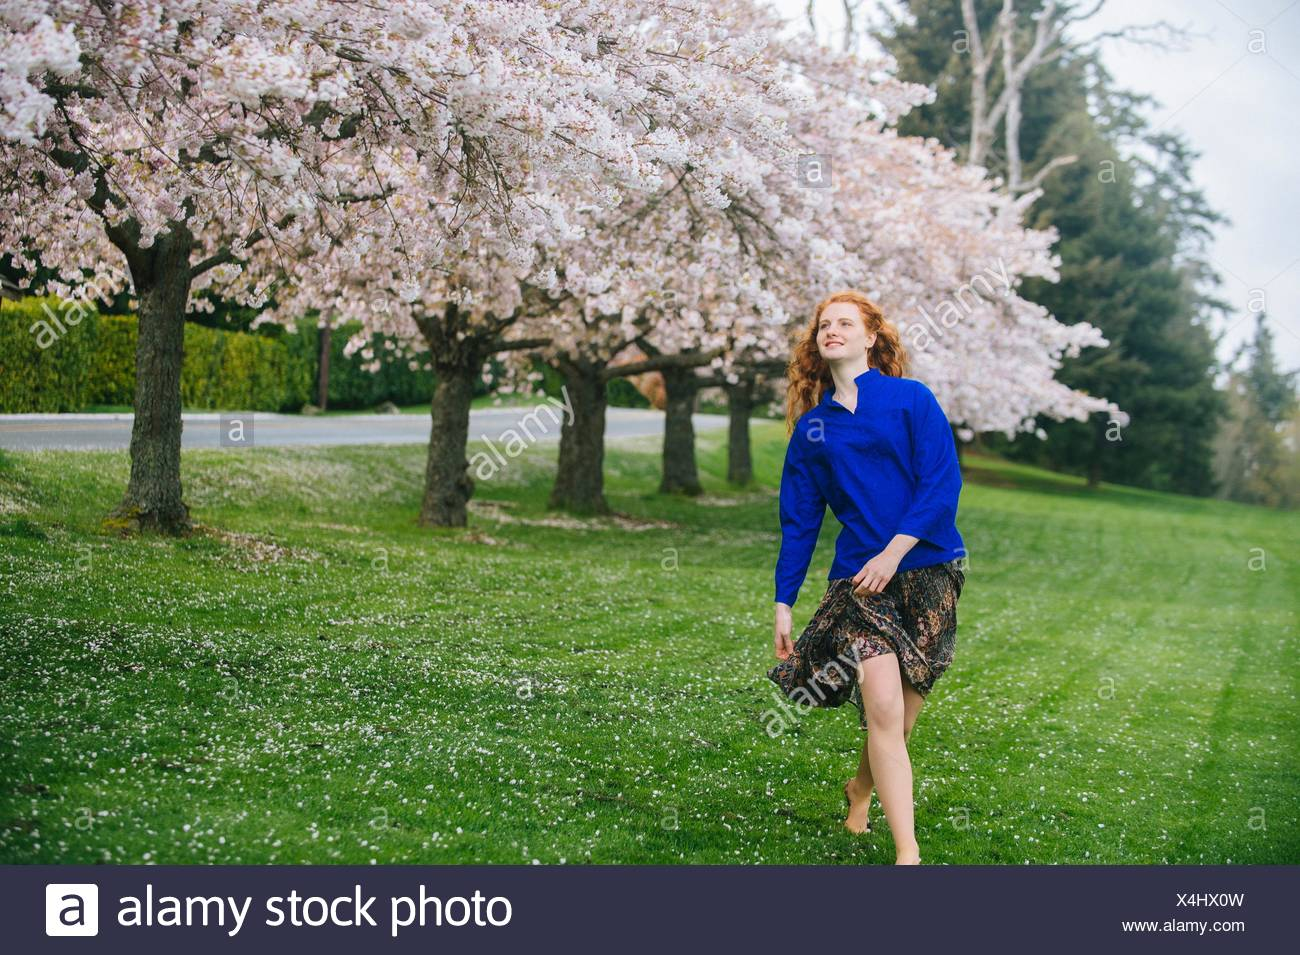 Young woman dancing barefoot in spring park - Stock Image